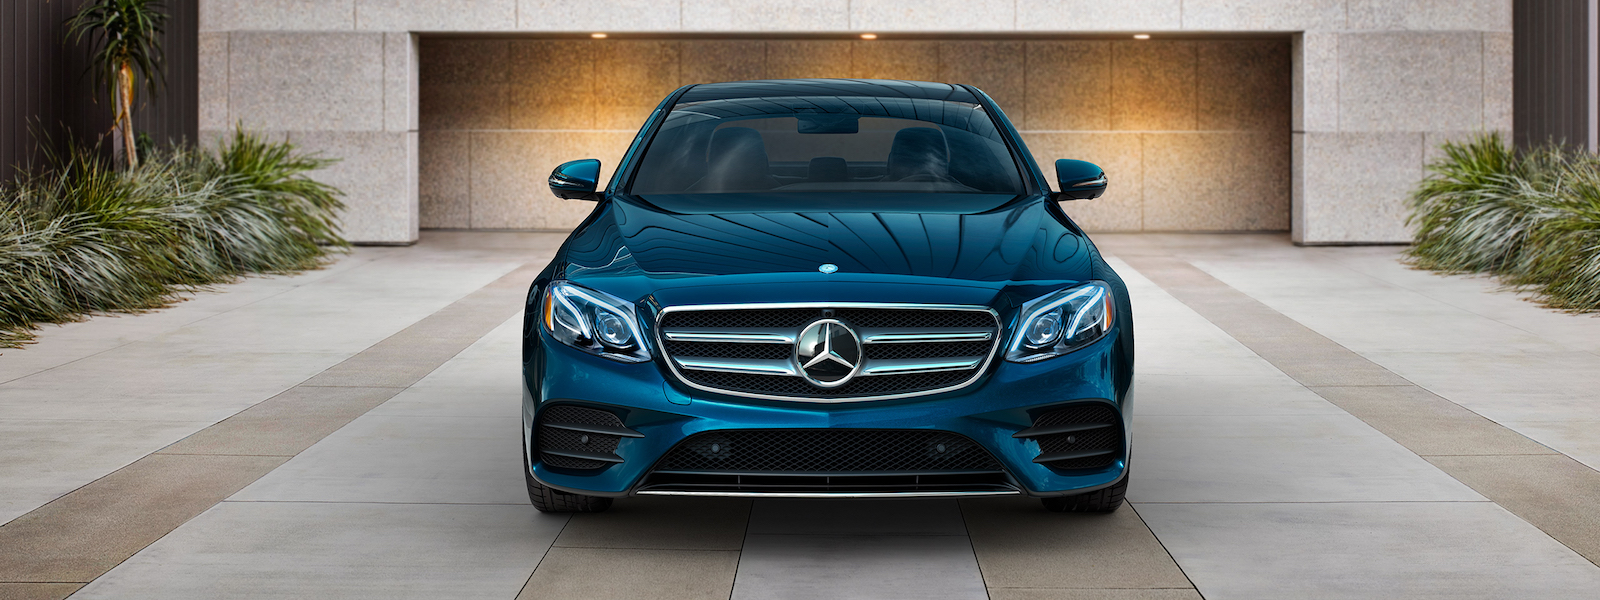 Mercedes Vs BMW: 10 Ways Benz Beats Bimmer | Mercedes Benz Of Laguna Niguel